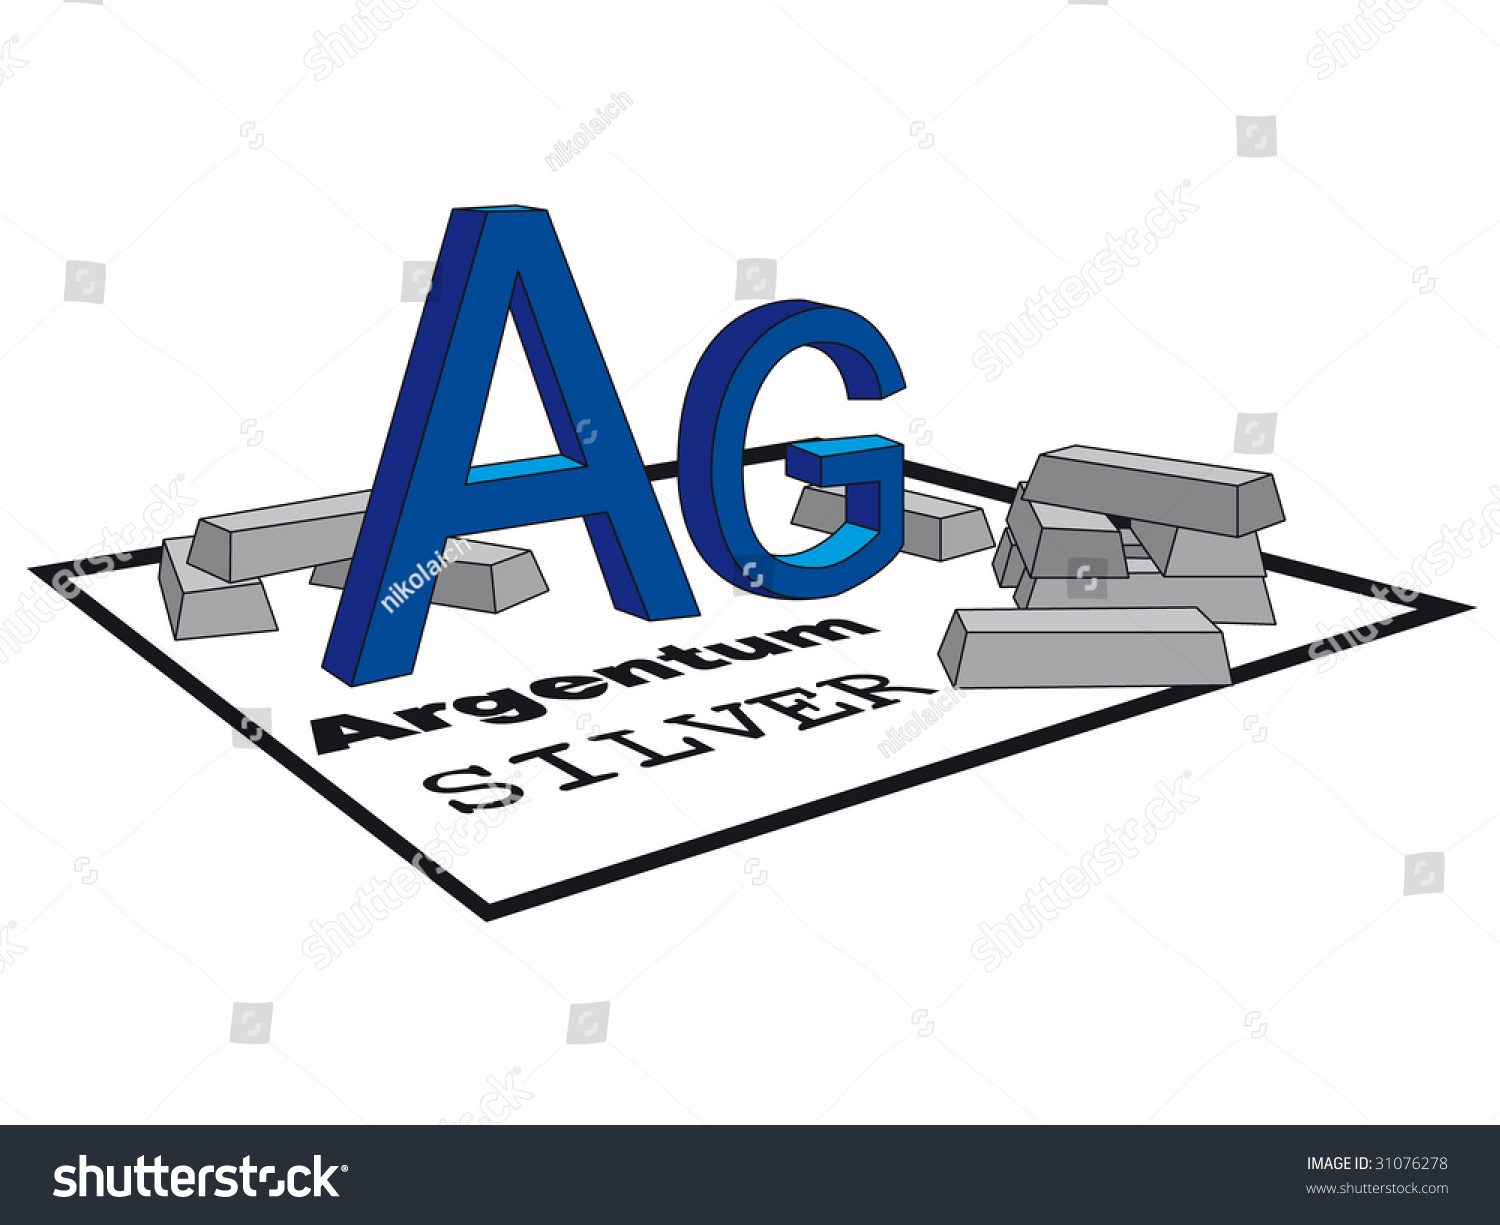 Symbol silver periodic table image collections periodic table images periodic table silver choice image periodic table images silver symbol periodic table ingots vector stock vector gamestrikefo Images